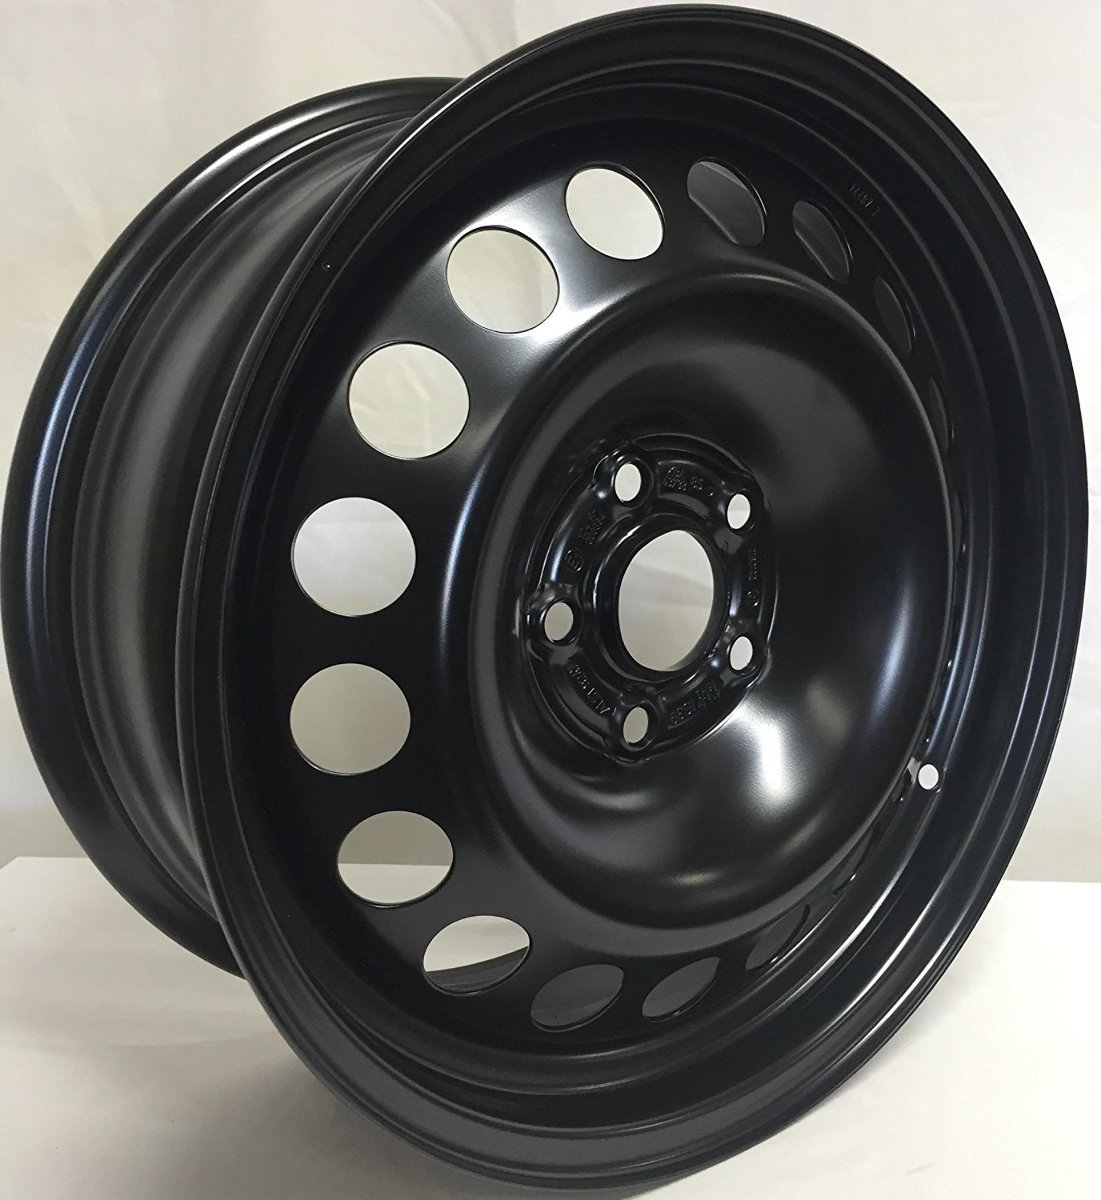 2012 Chevy Cruze Tire Size >> New 16 Inch 5 On 105 Black Steel Wheel Fits Cruze We4745n